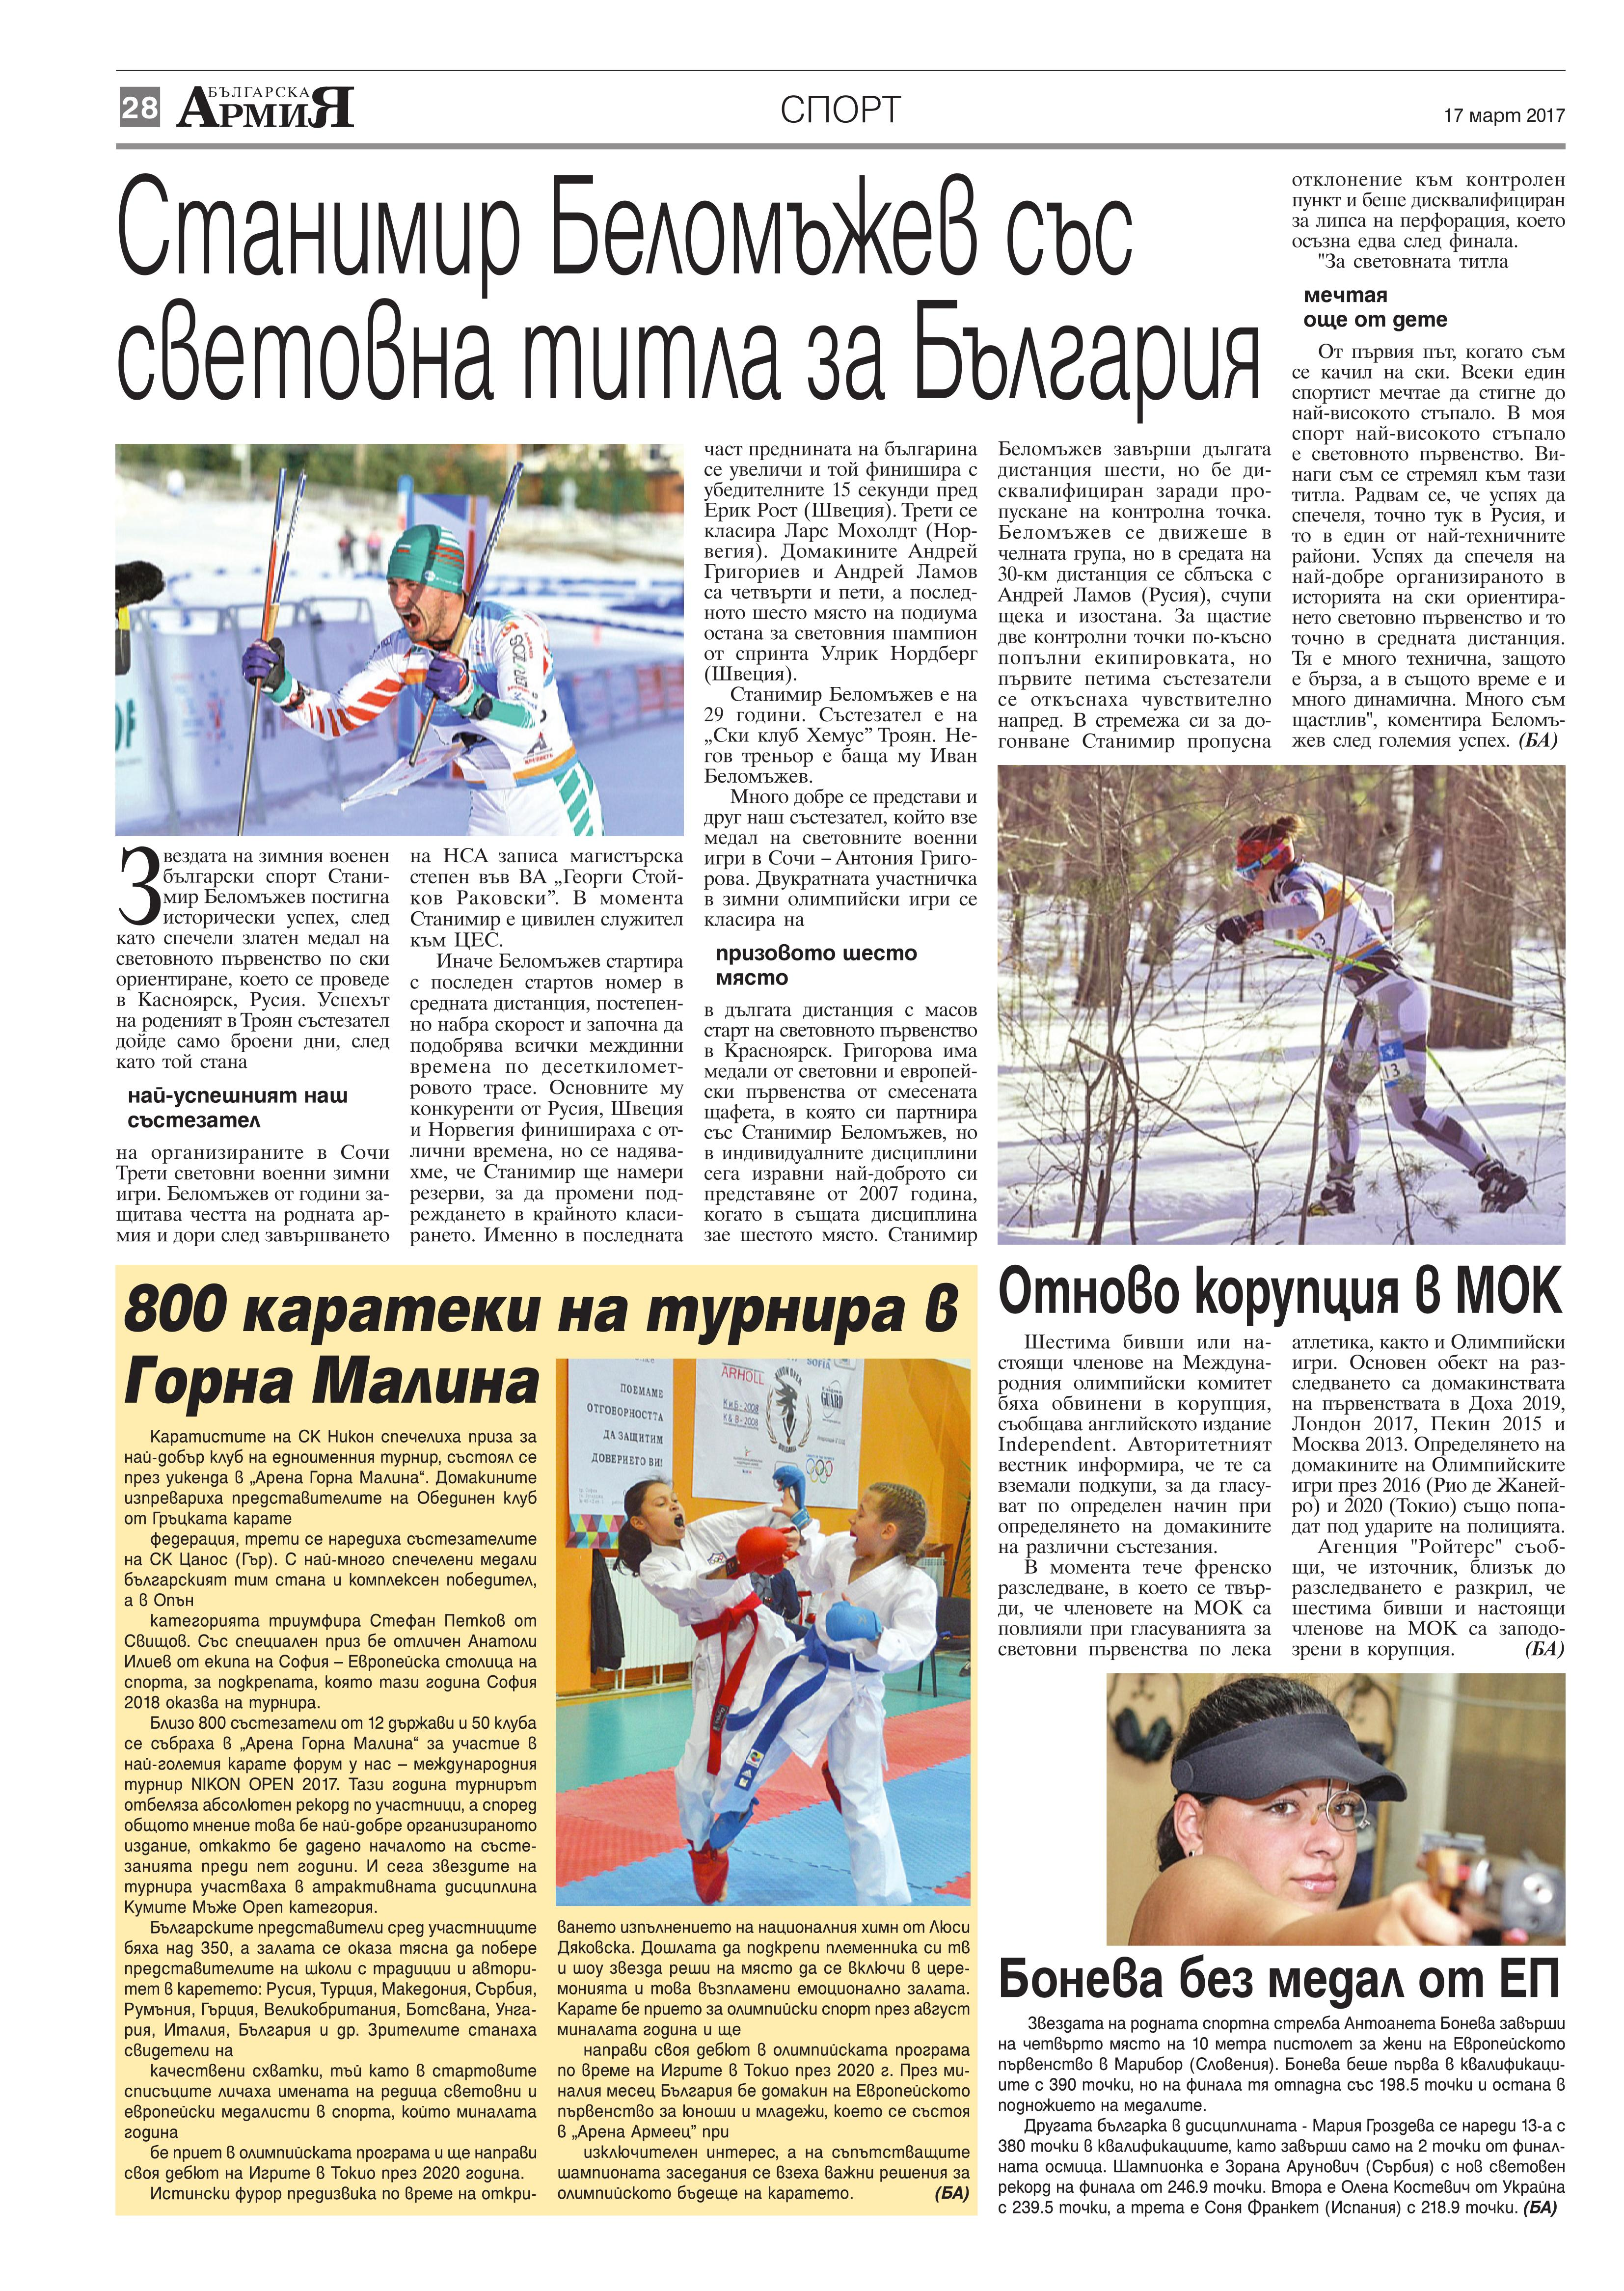 https://www.armymedia.bg/wp-content/uploads/2015/06/28.page1_-15.jpg